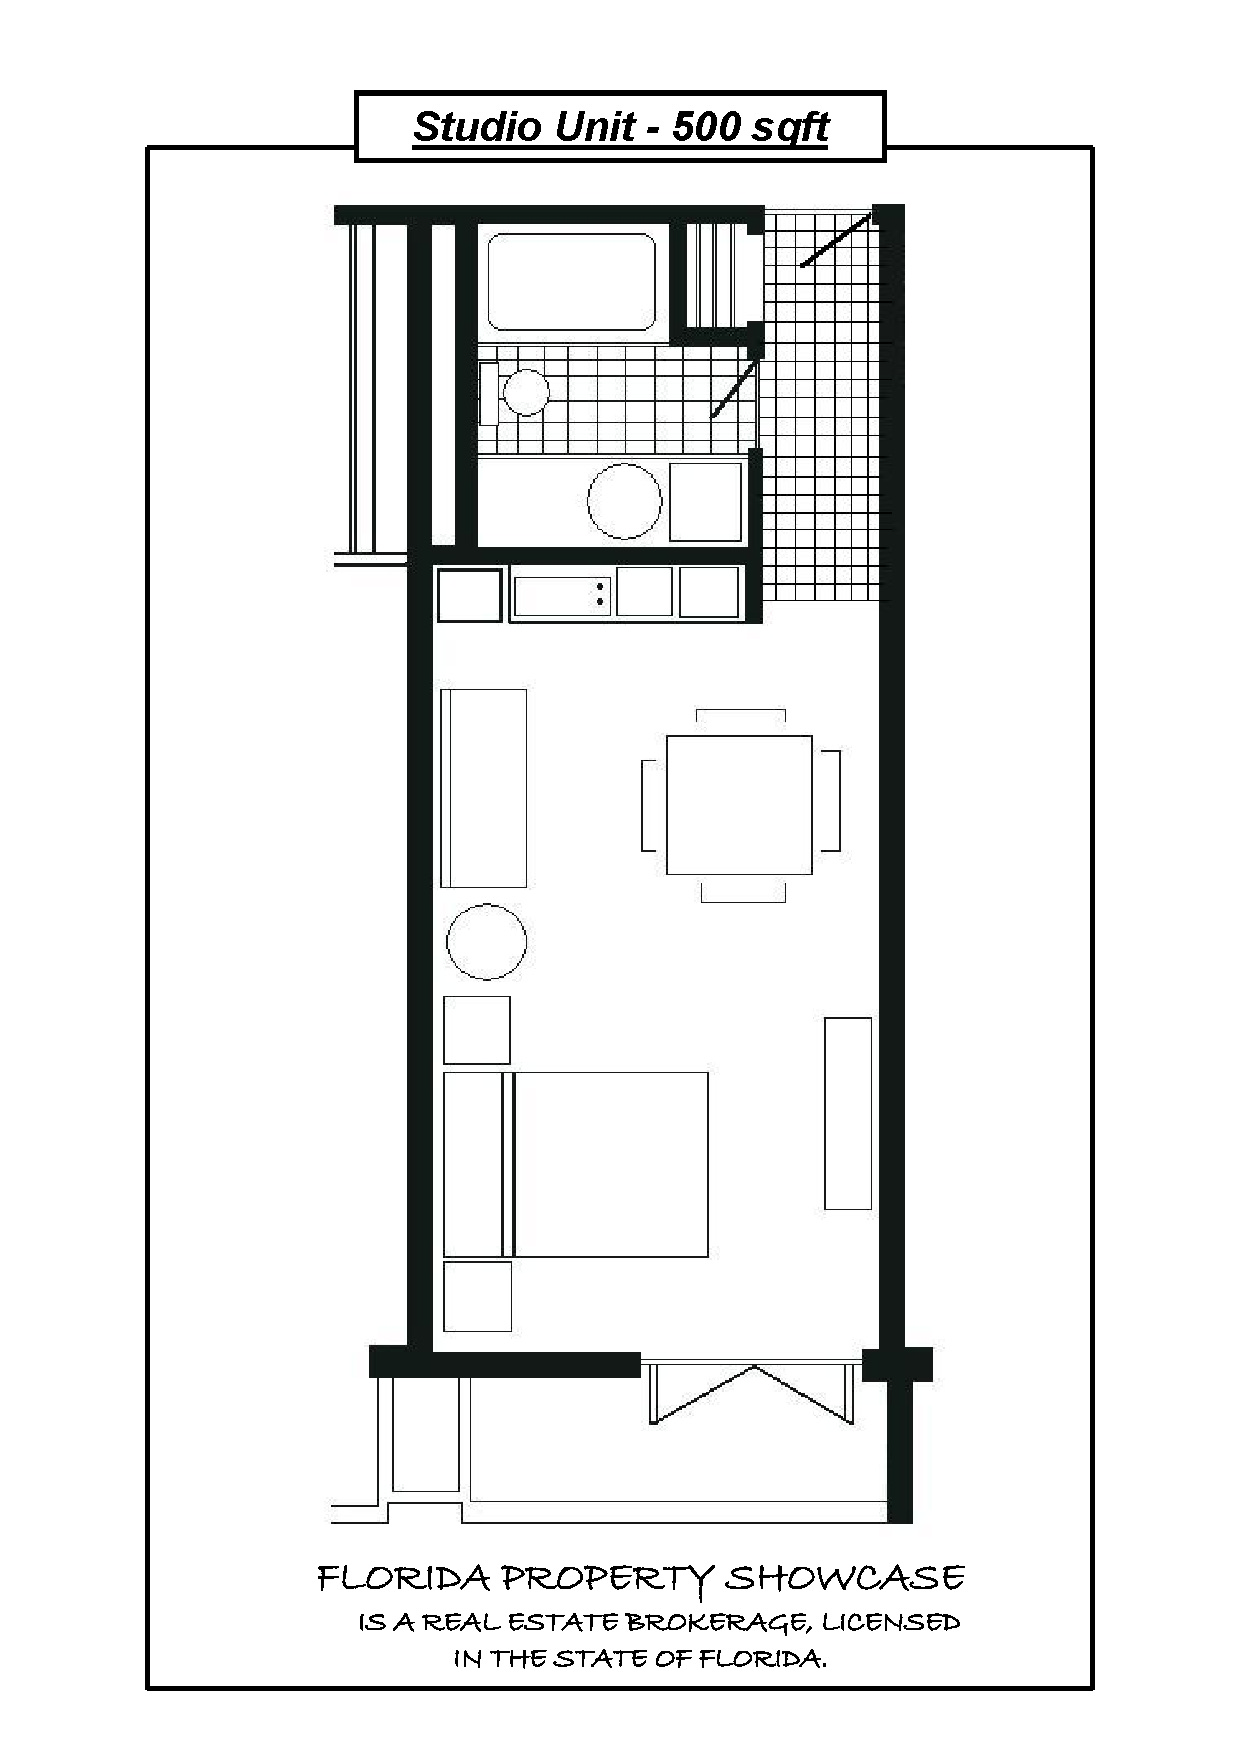 Dance studio floor plans joy studio design gallery for Studio layout plan